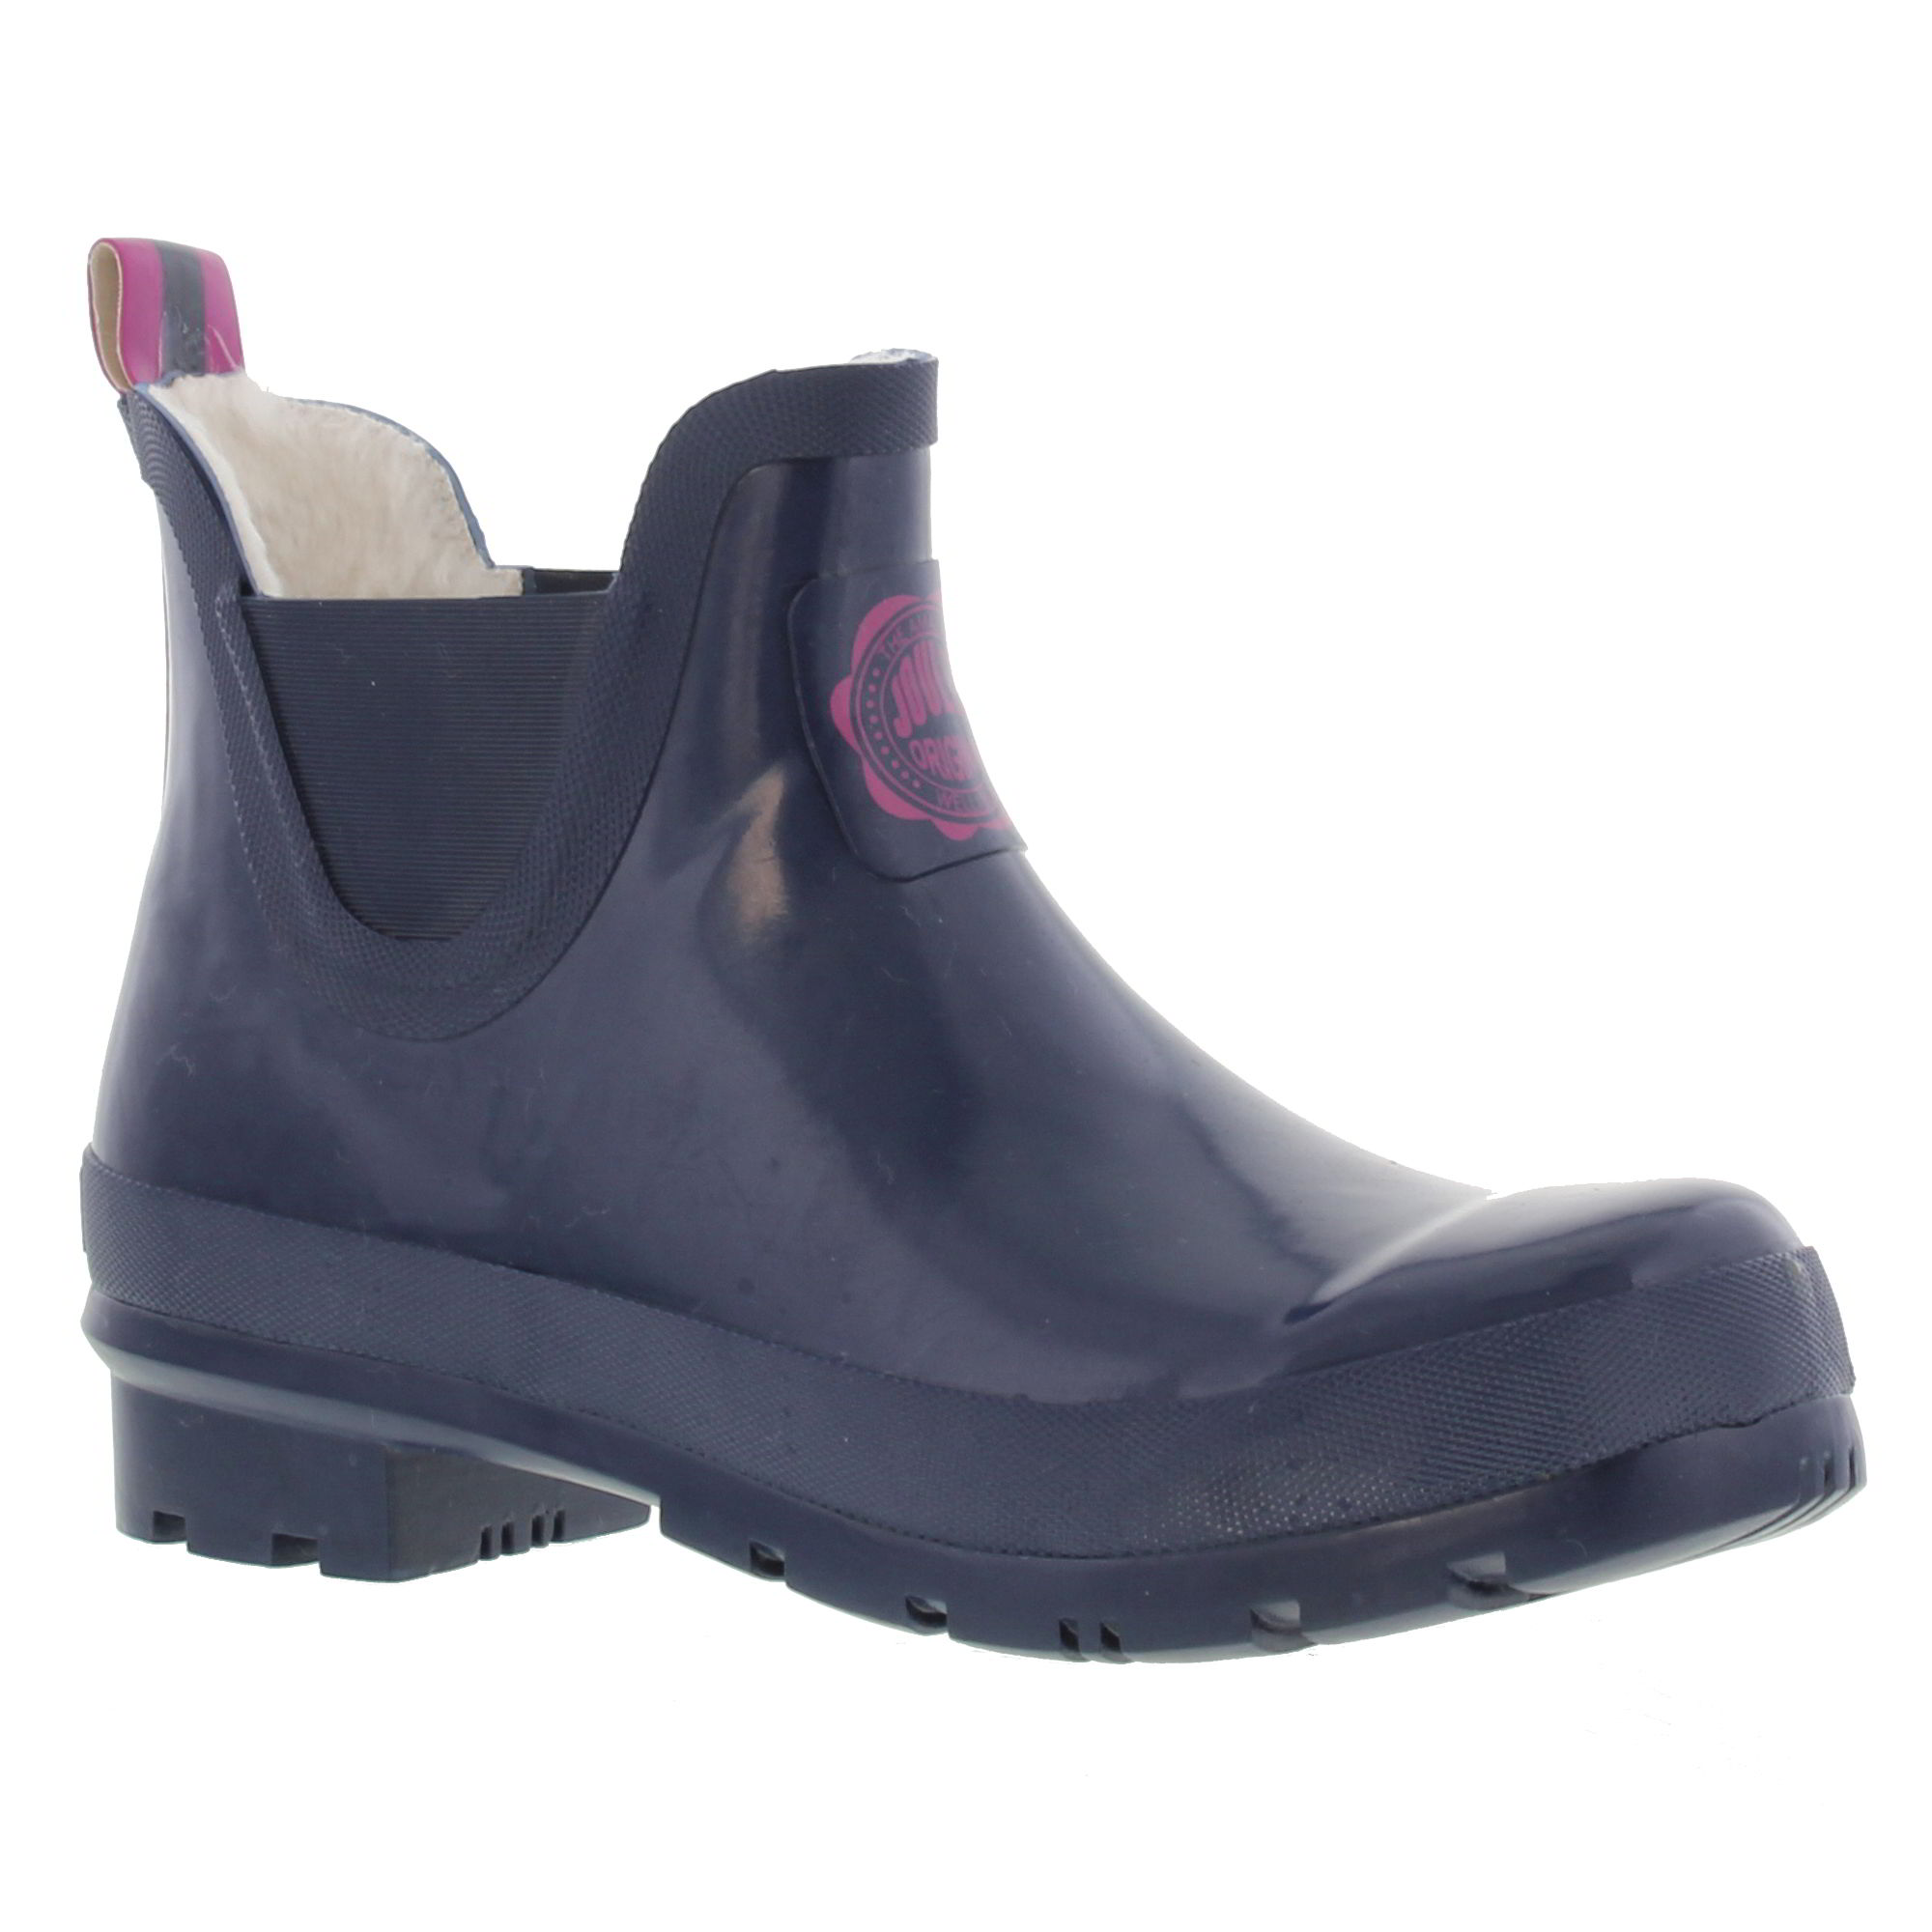 Joules Dog Wellies Black